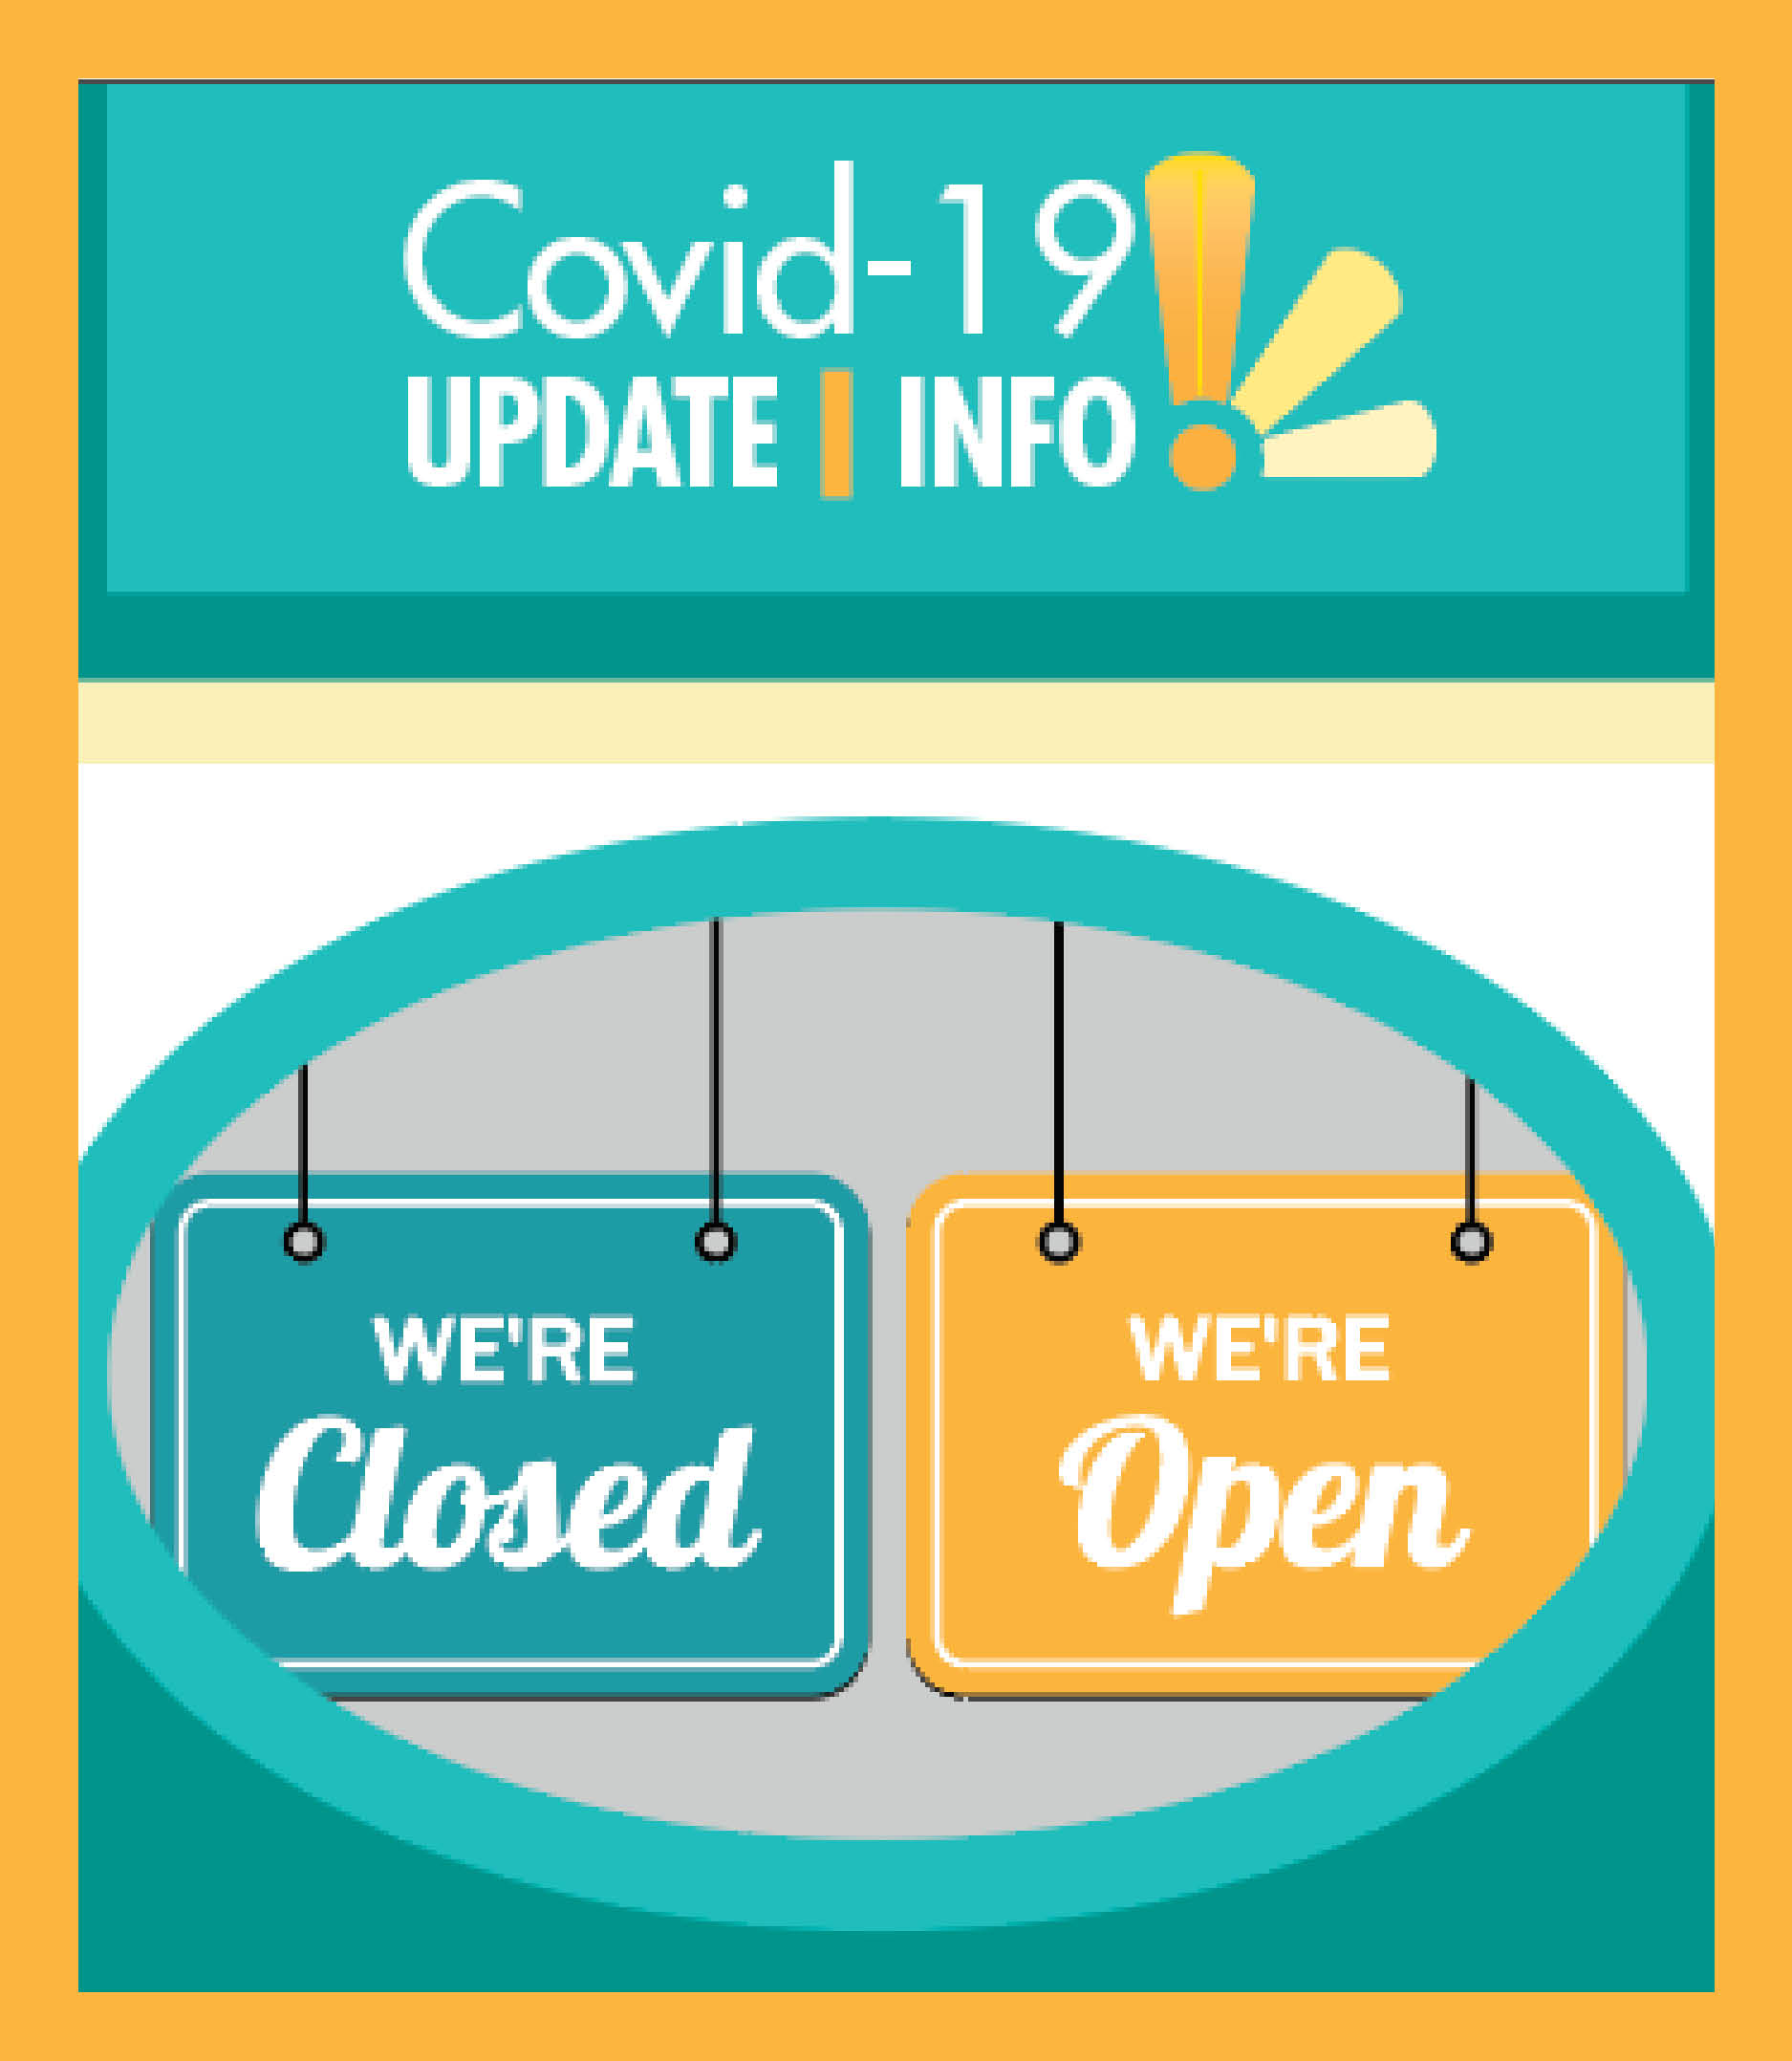 Covid-19 open closed spotlight image